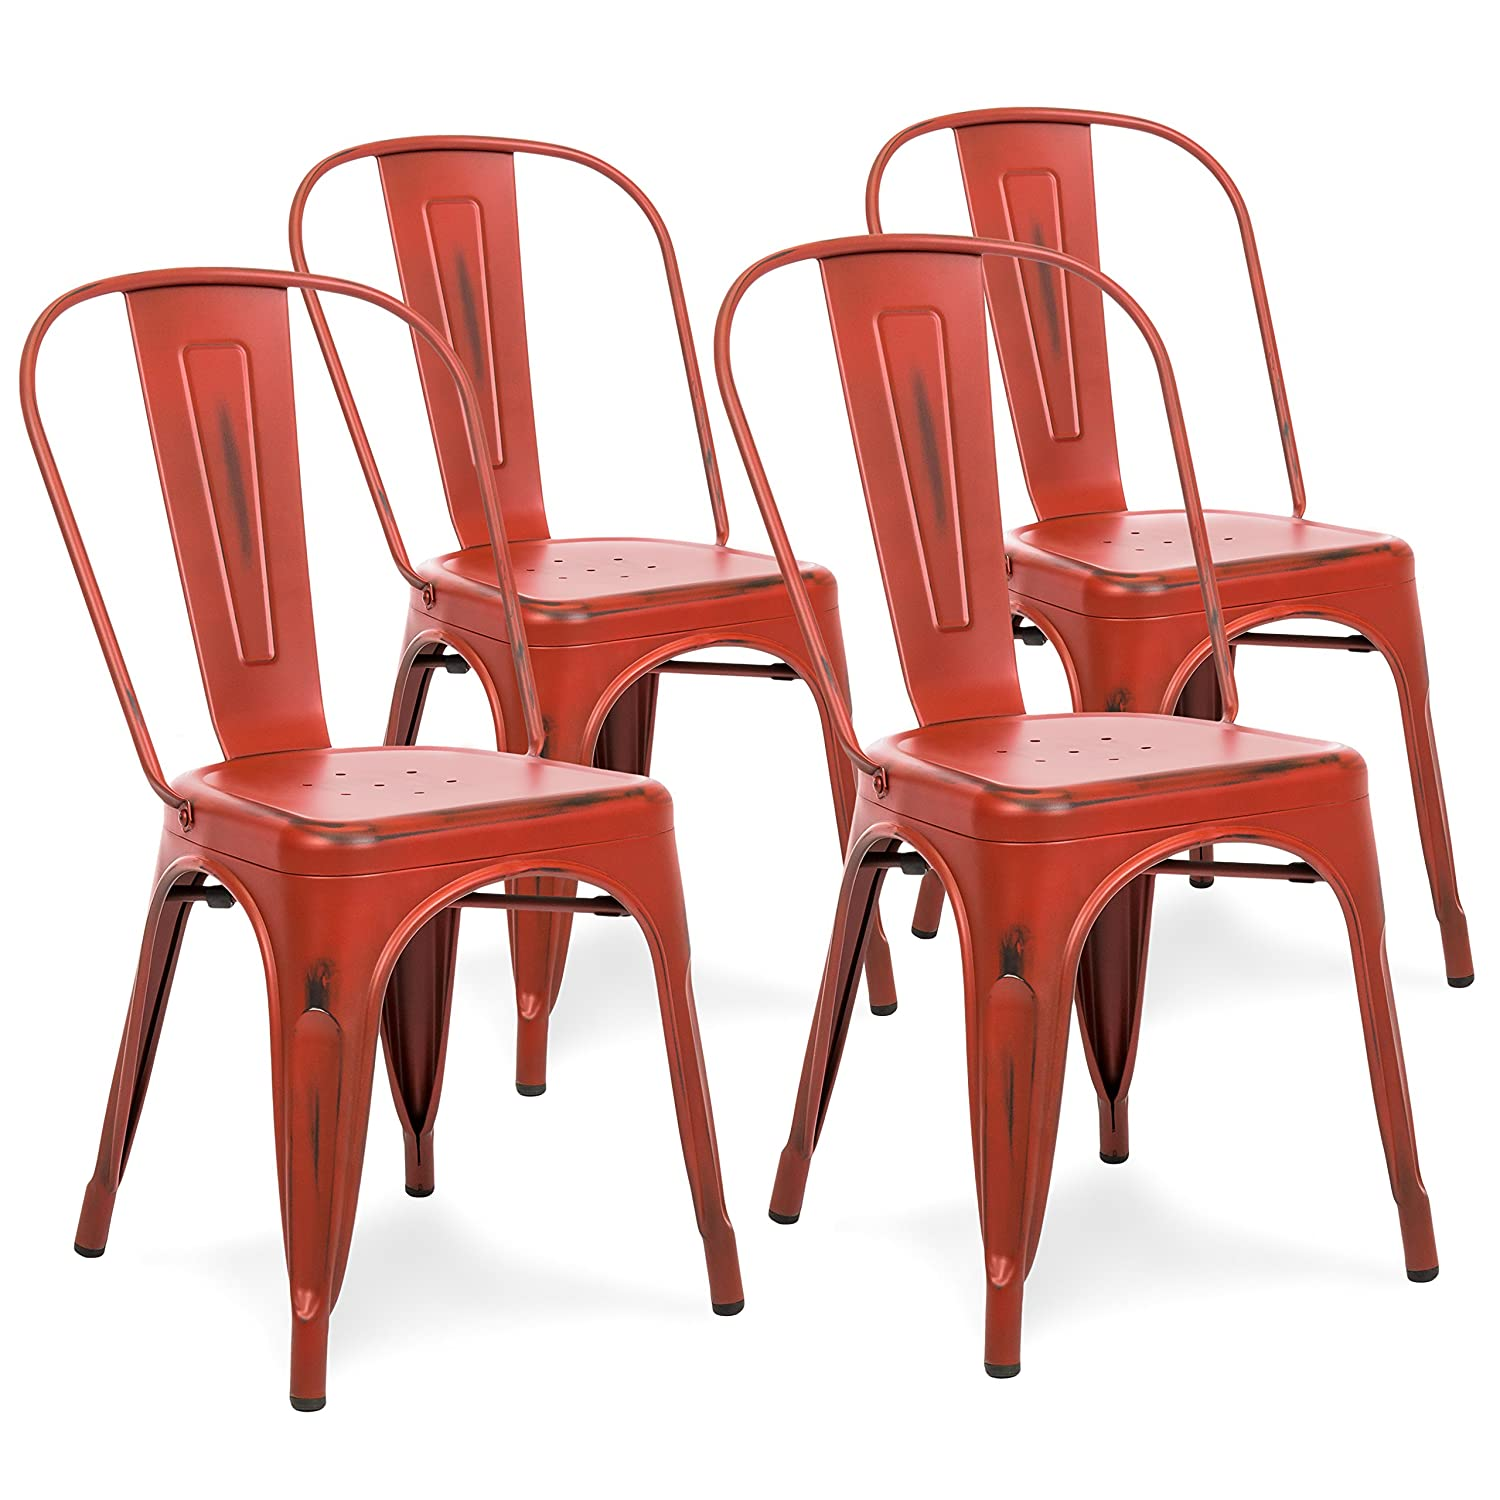 Best Choice Products Metal Industrial Distressed Bistro Chairs for Home, Dining Room, Caf , Restaurant Set of 4, Red